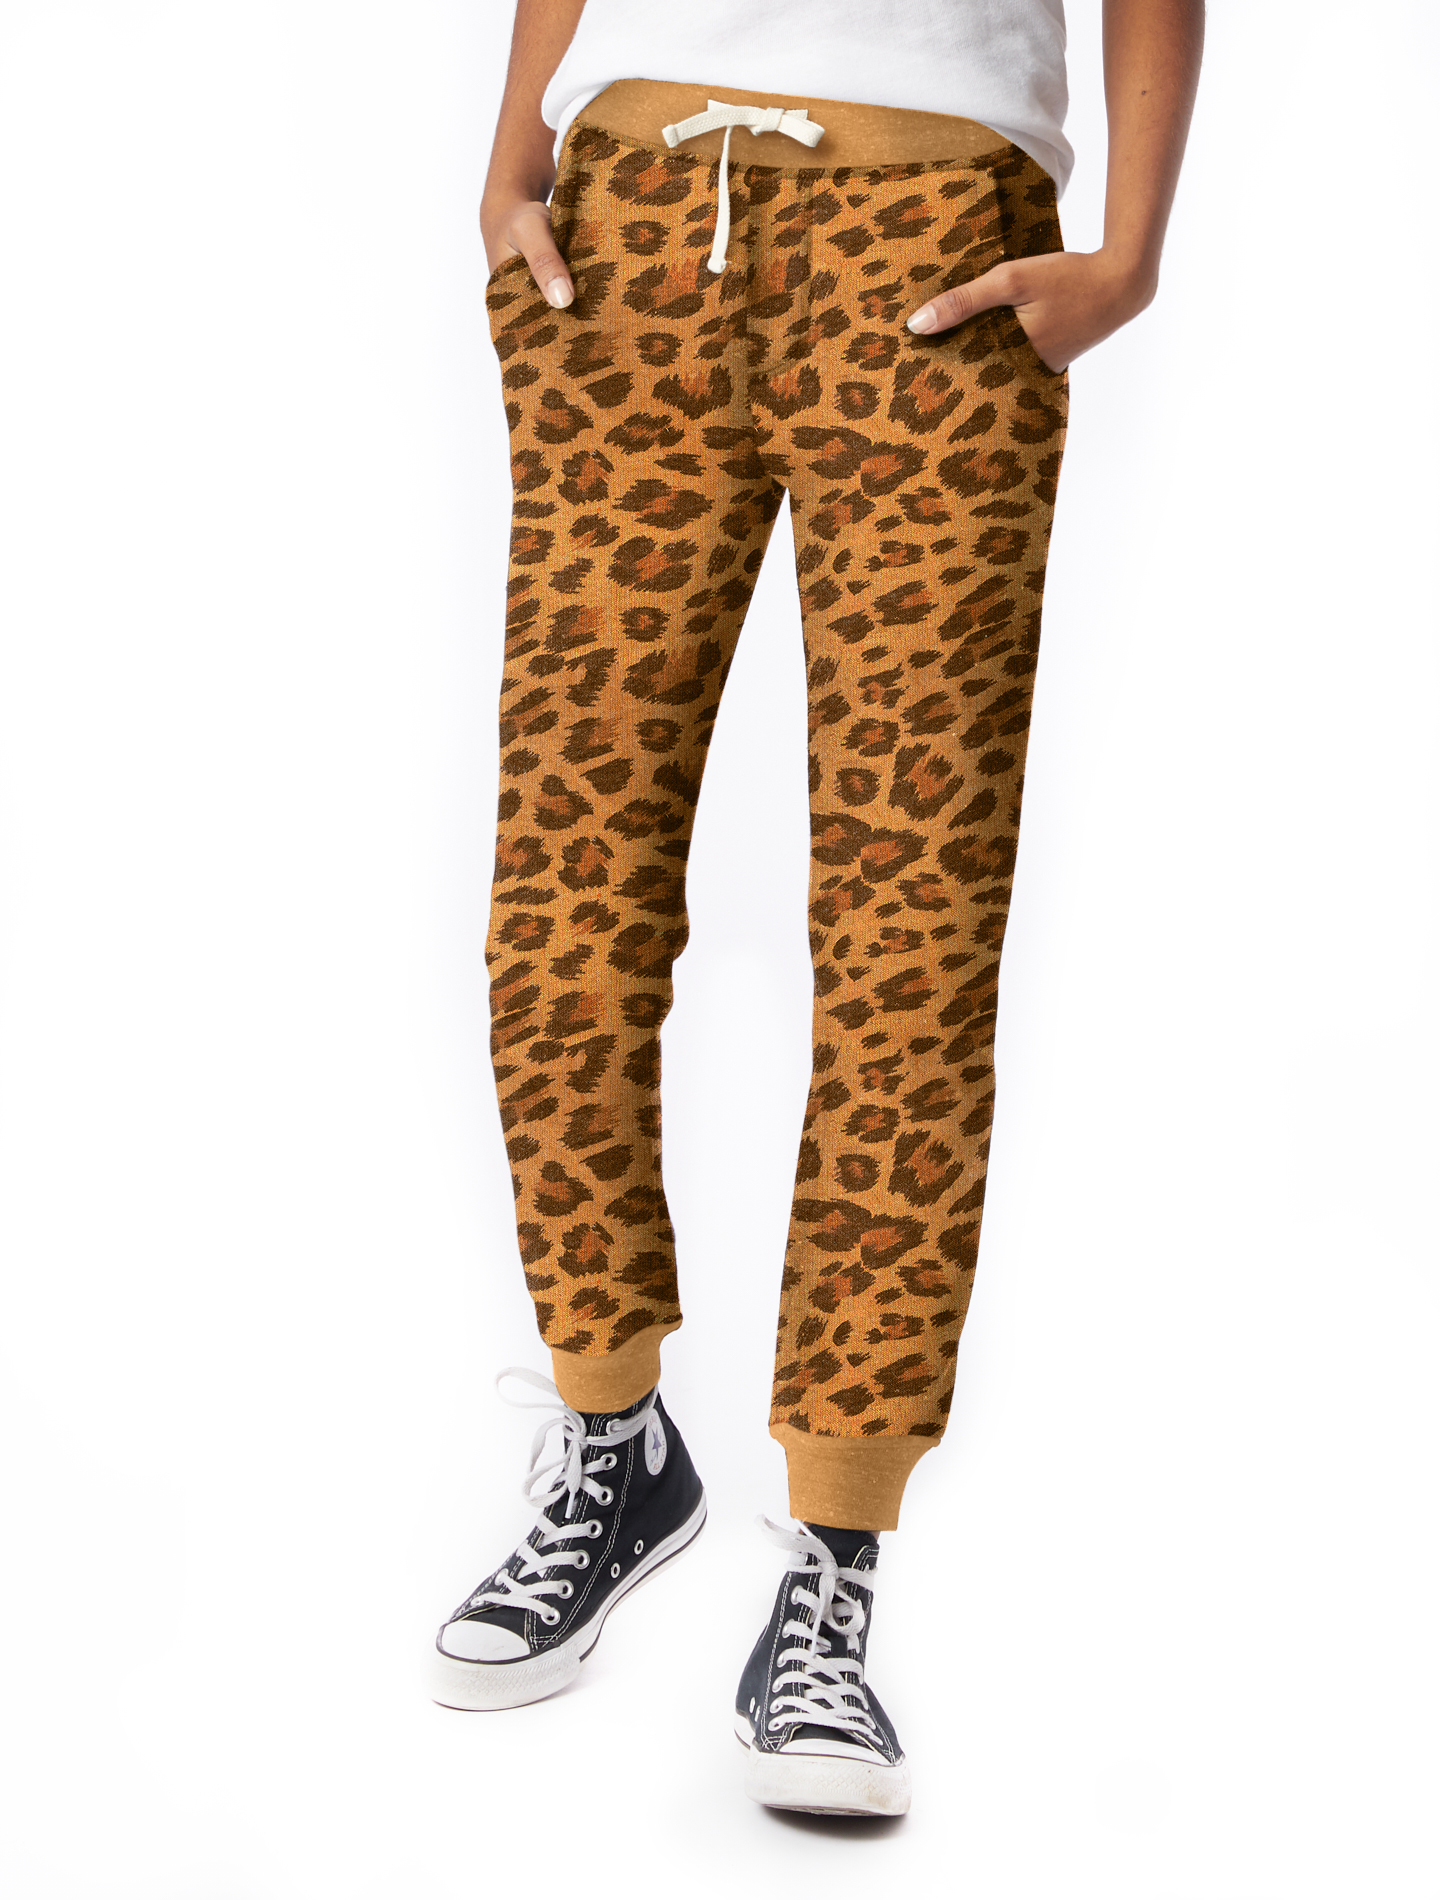 Dodgeball Printed Eco-Fleece Youth Pants, $38 @alternativeapparel.com